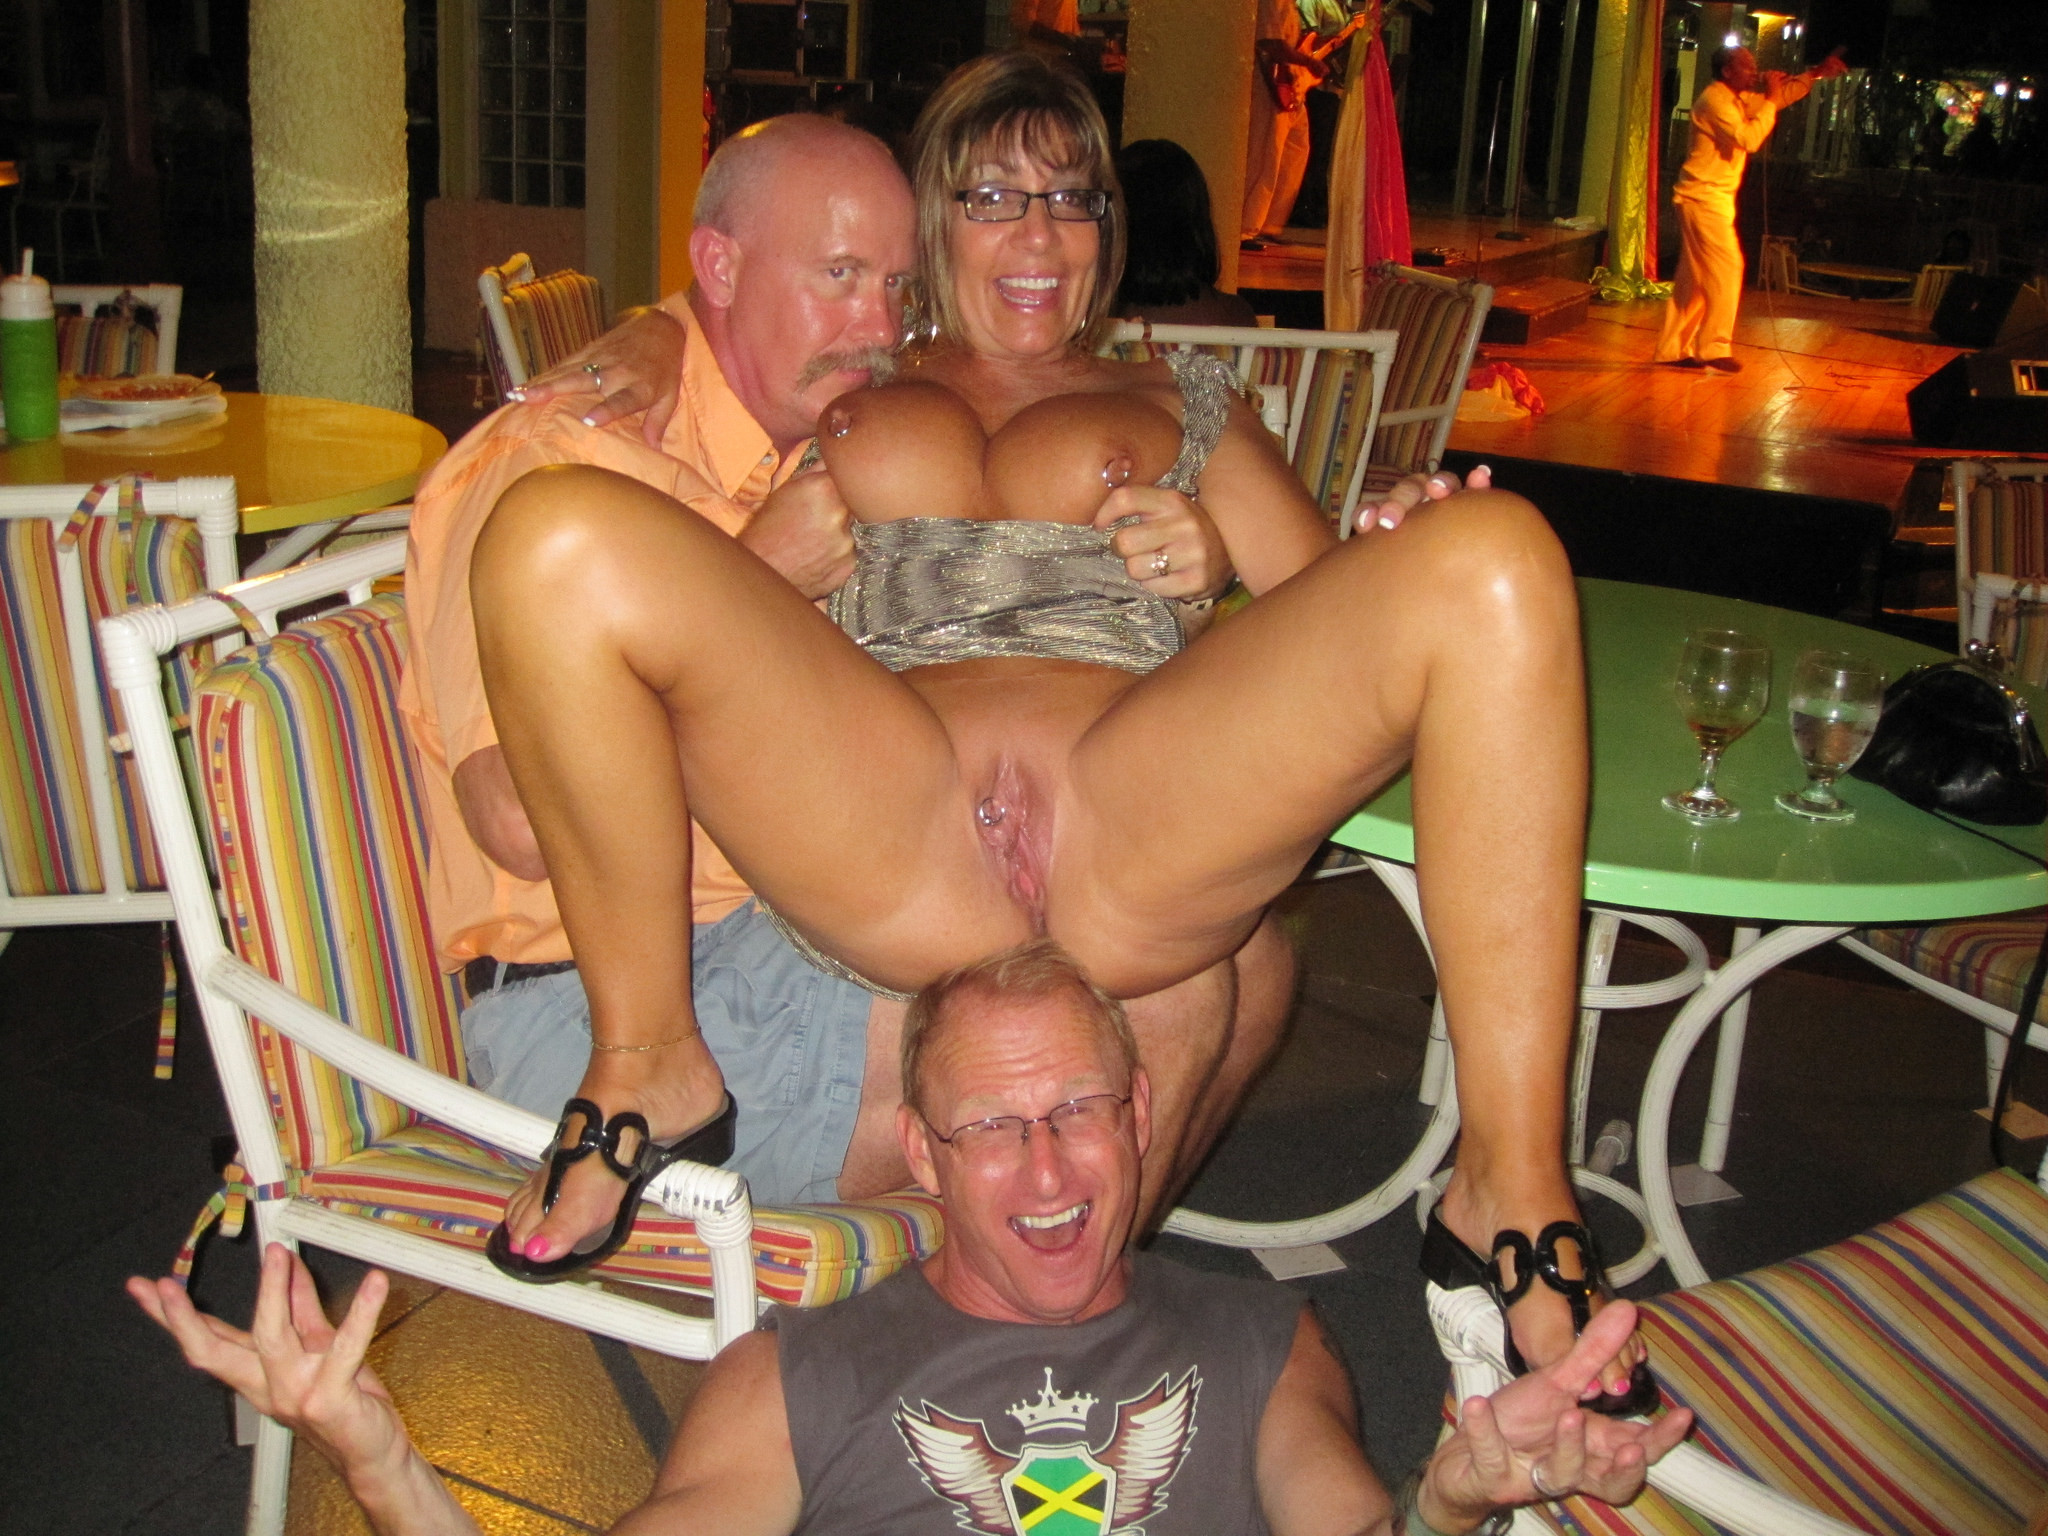 consider, blonde milf gangbang swinger party think, that